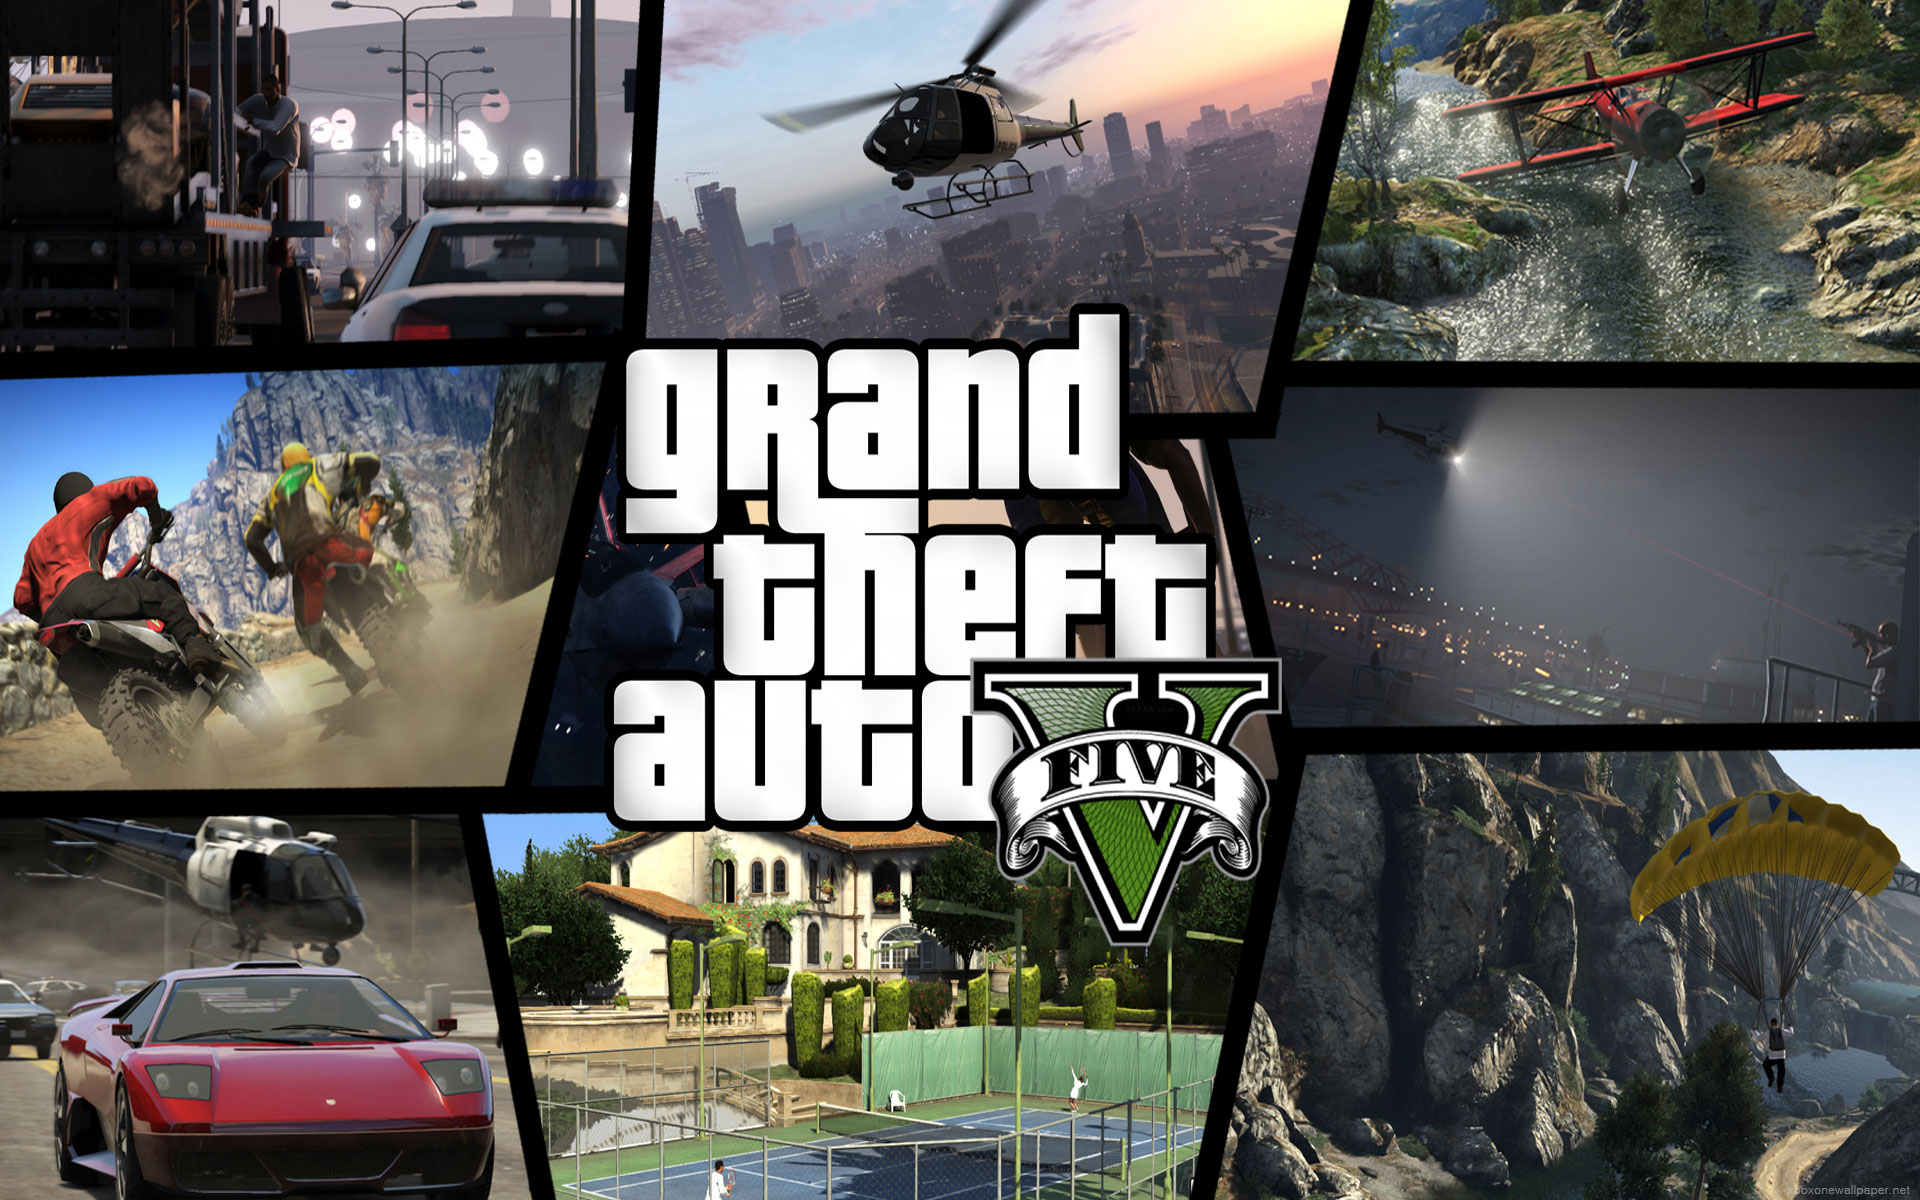 Gta v Wallpaper Xbox One Wallpaper Game HD Wallpaper 1080p 1920x1200